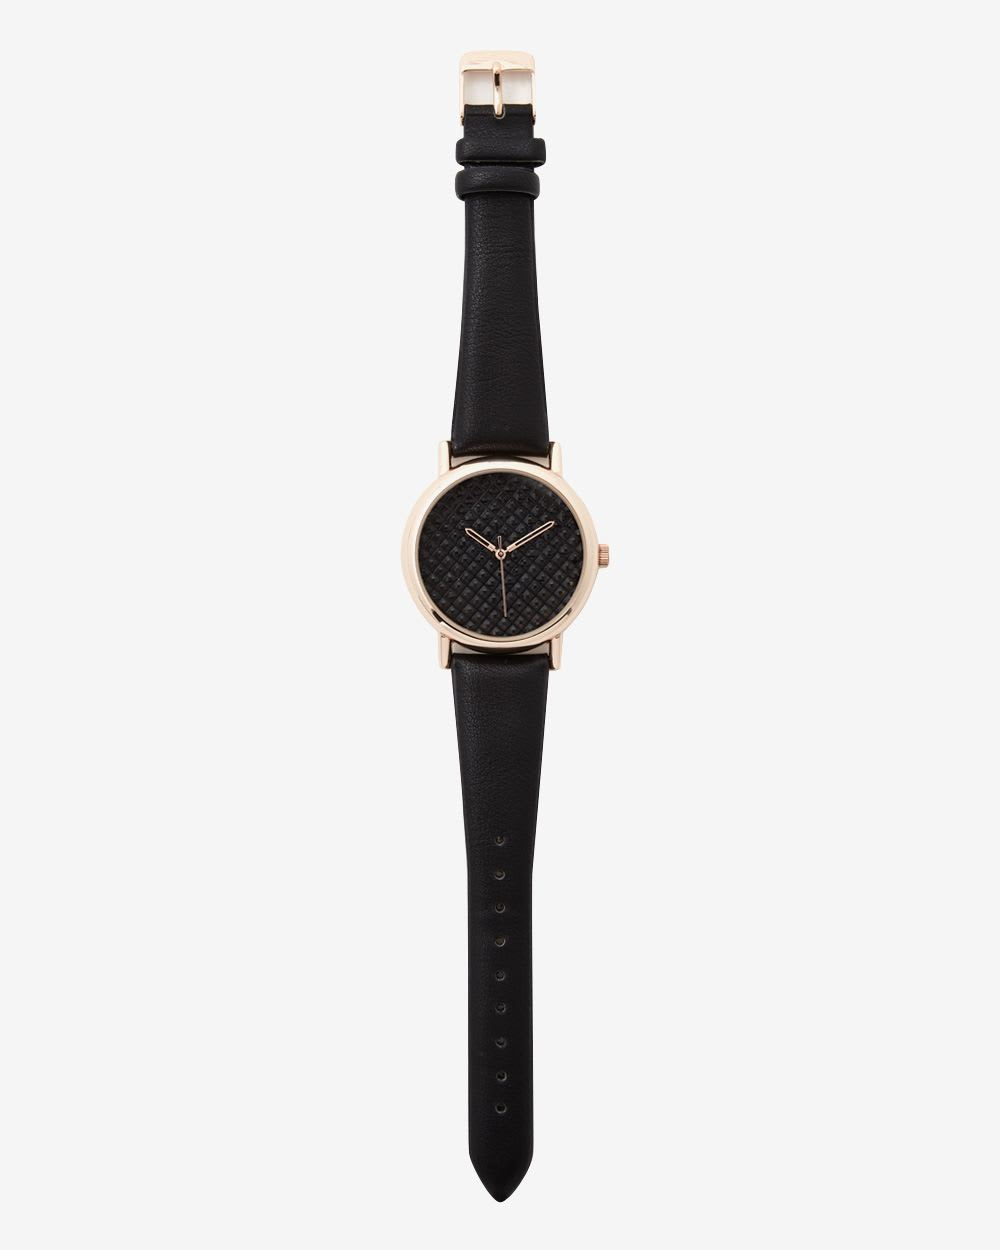 Gold and Black Wristwatch